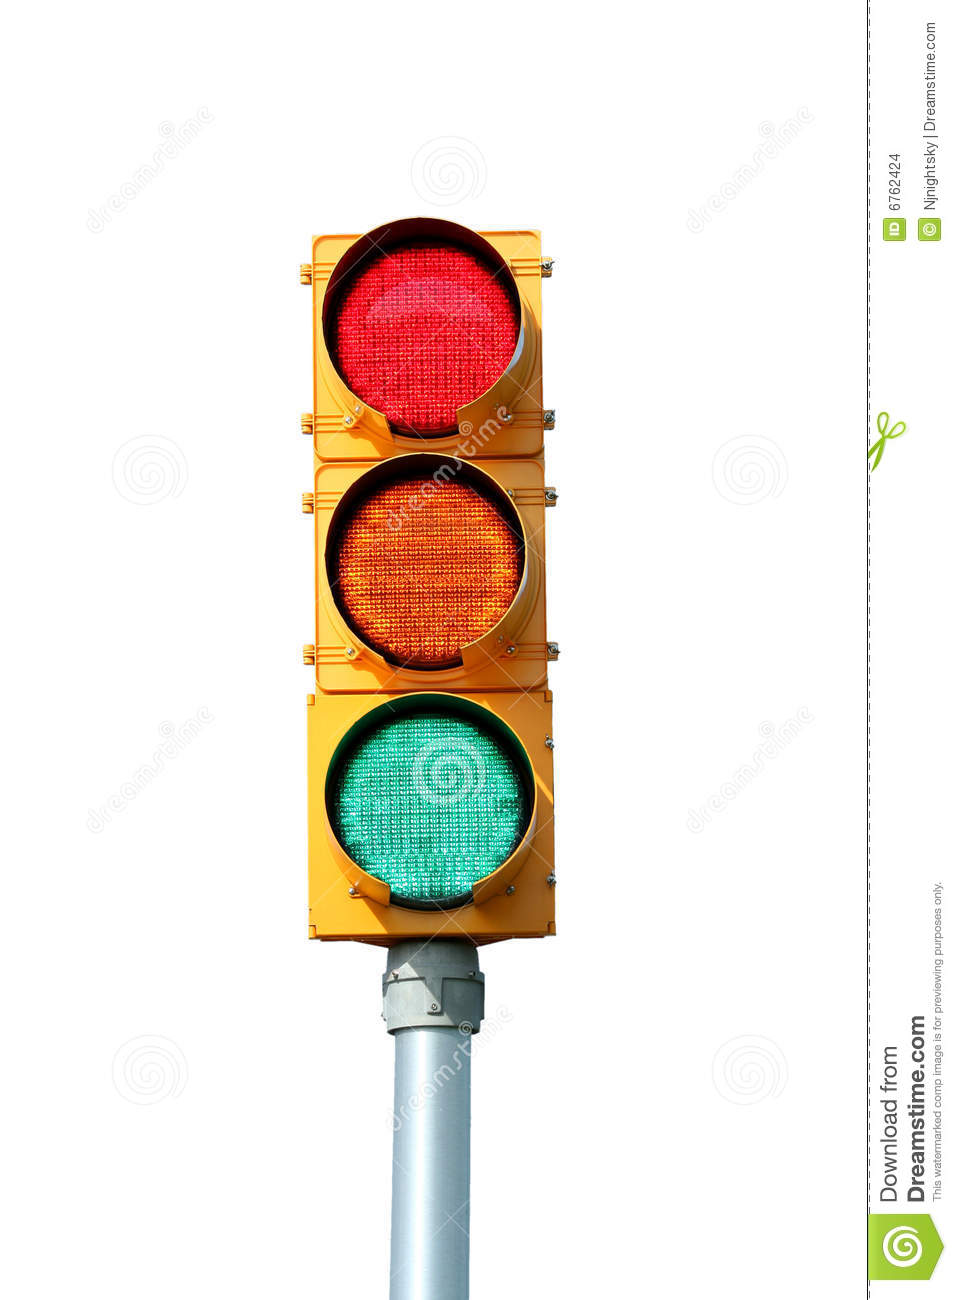 Isolated Traffic Signal Light Stock Images - Image: 6762424